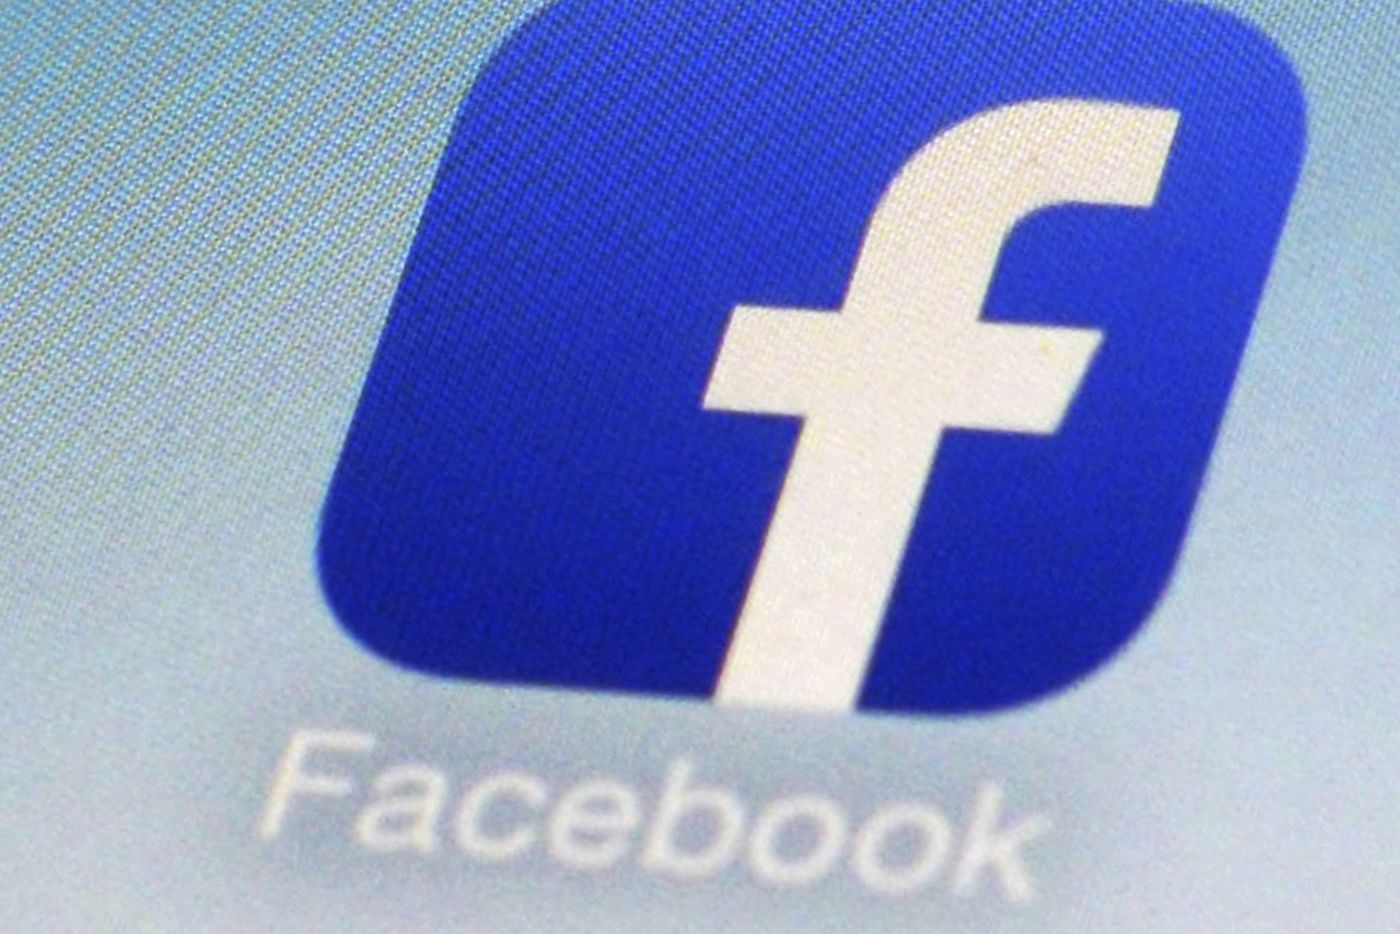 30 million accounts on Facebook were compromised after the hack